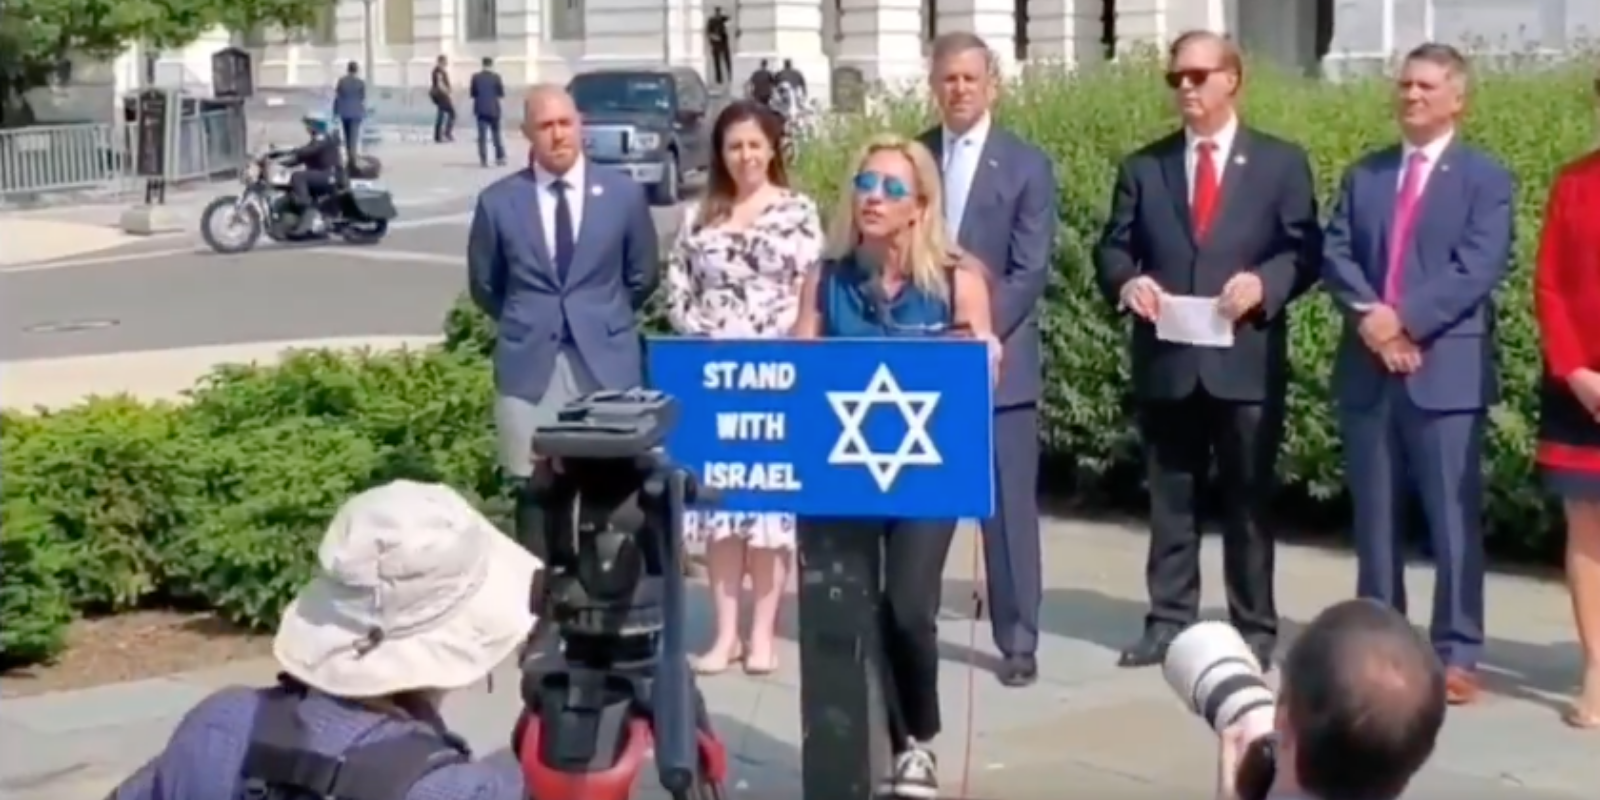 Marjorie Taylor Greene says she stands with Israel while Hamas-loving detractors claim she is 'antisemitic'